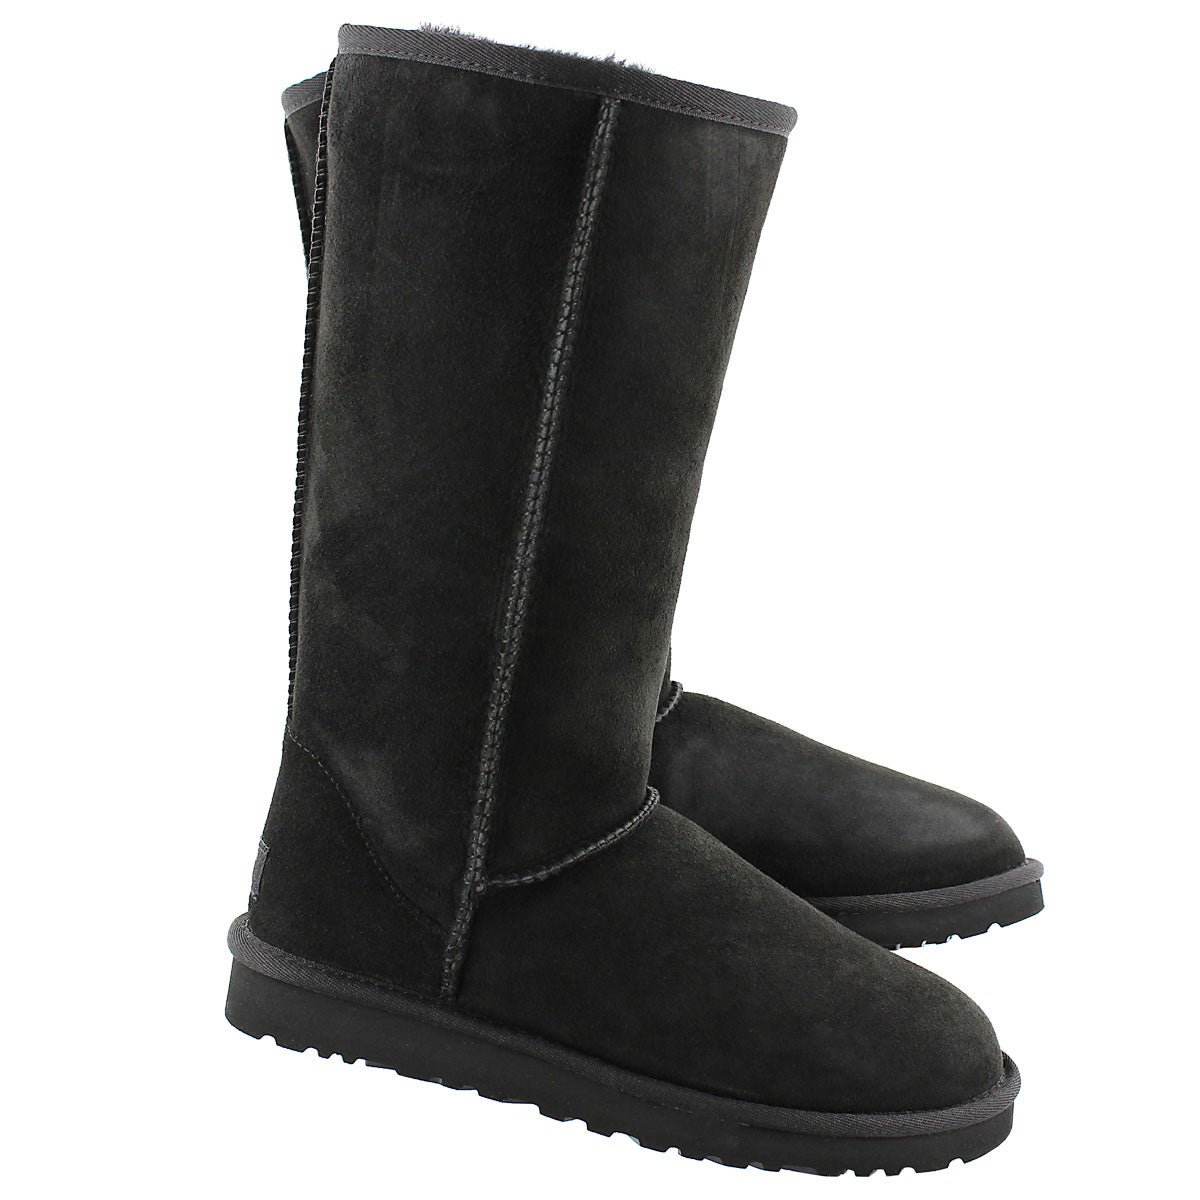 Lds Tall black sheepskin boot